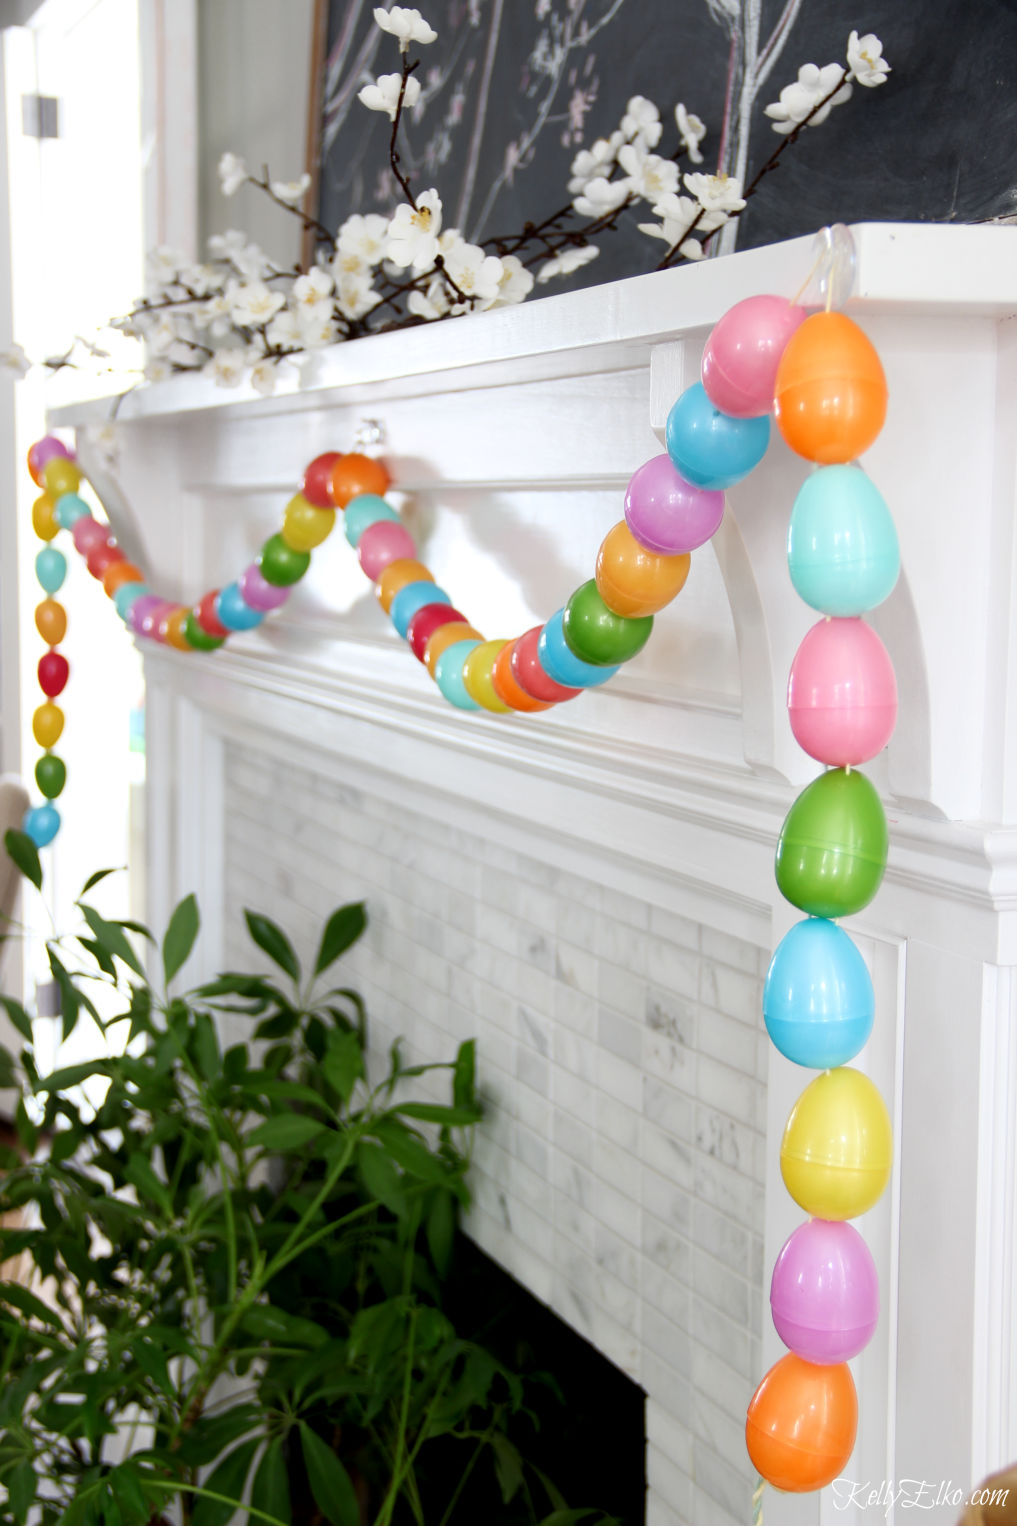 DIY egg garland kellyelko.com #crafts #springcrafts #eastercrafts #eastereggs #garland #springdecor #kidscrafts